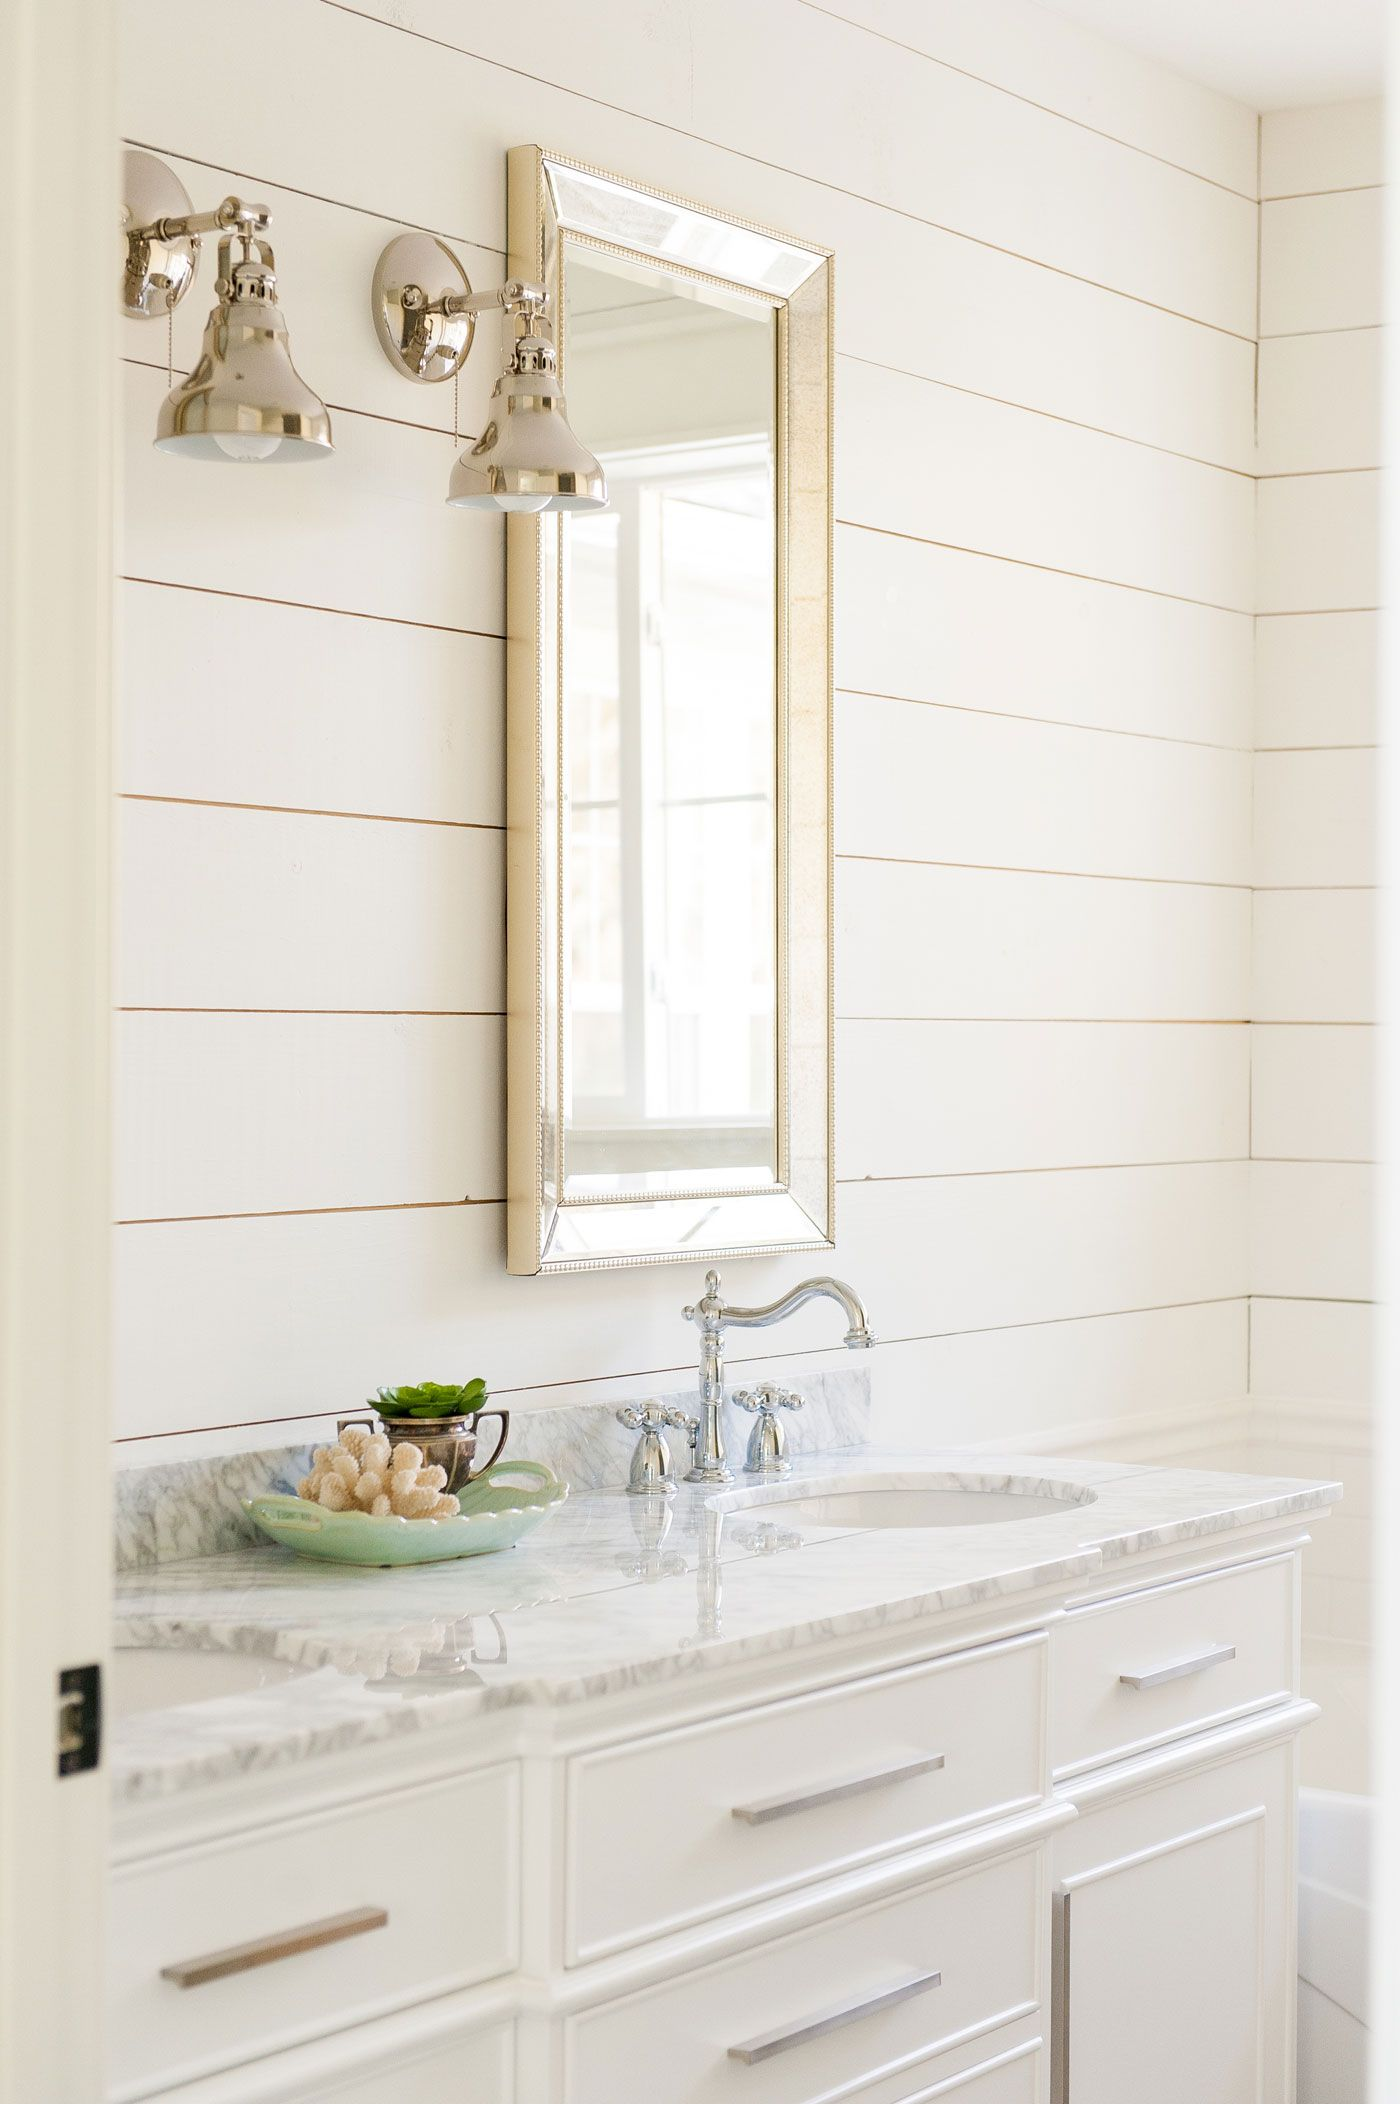 white paint colors 5 favorites for shiplap bath ideas. Black Bedroom Furniture Sets. Home Design Ideas